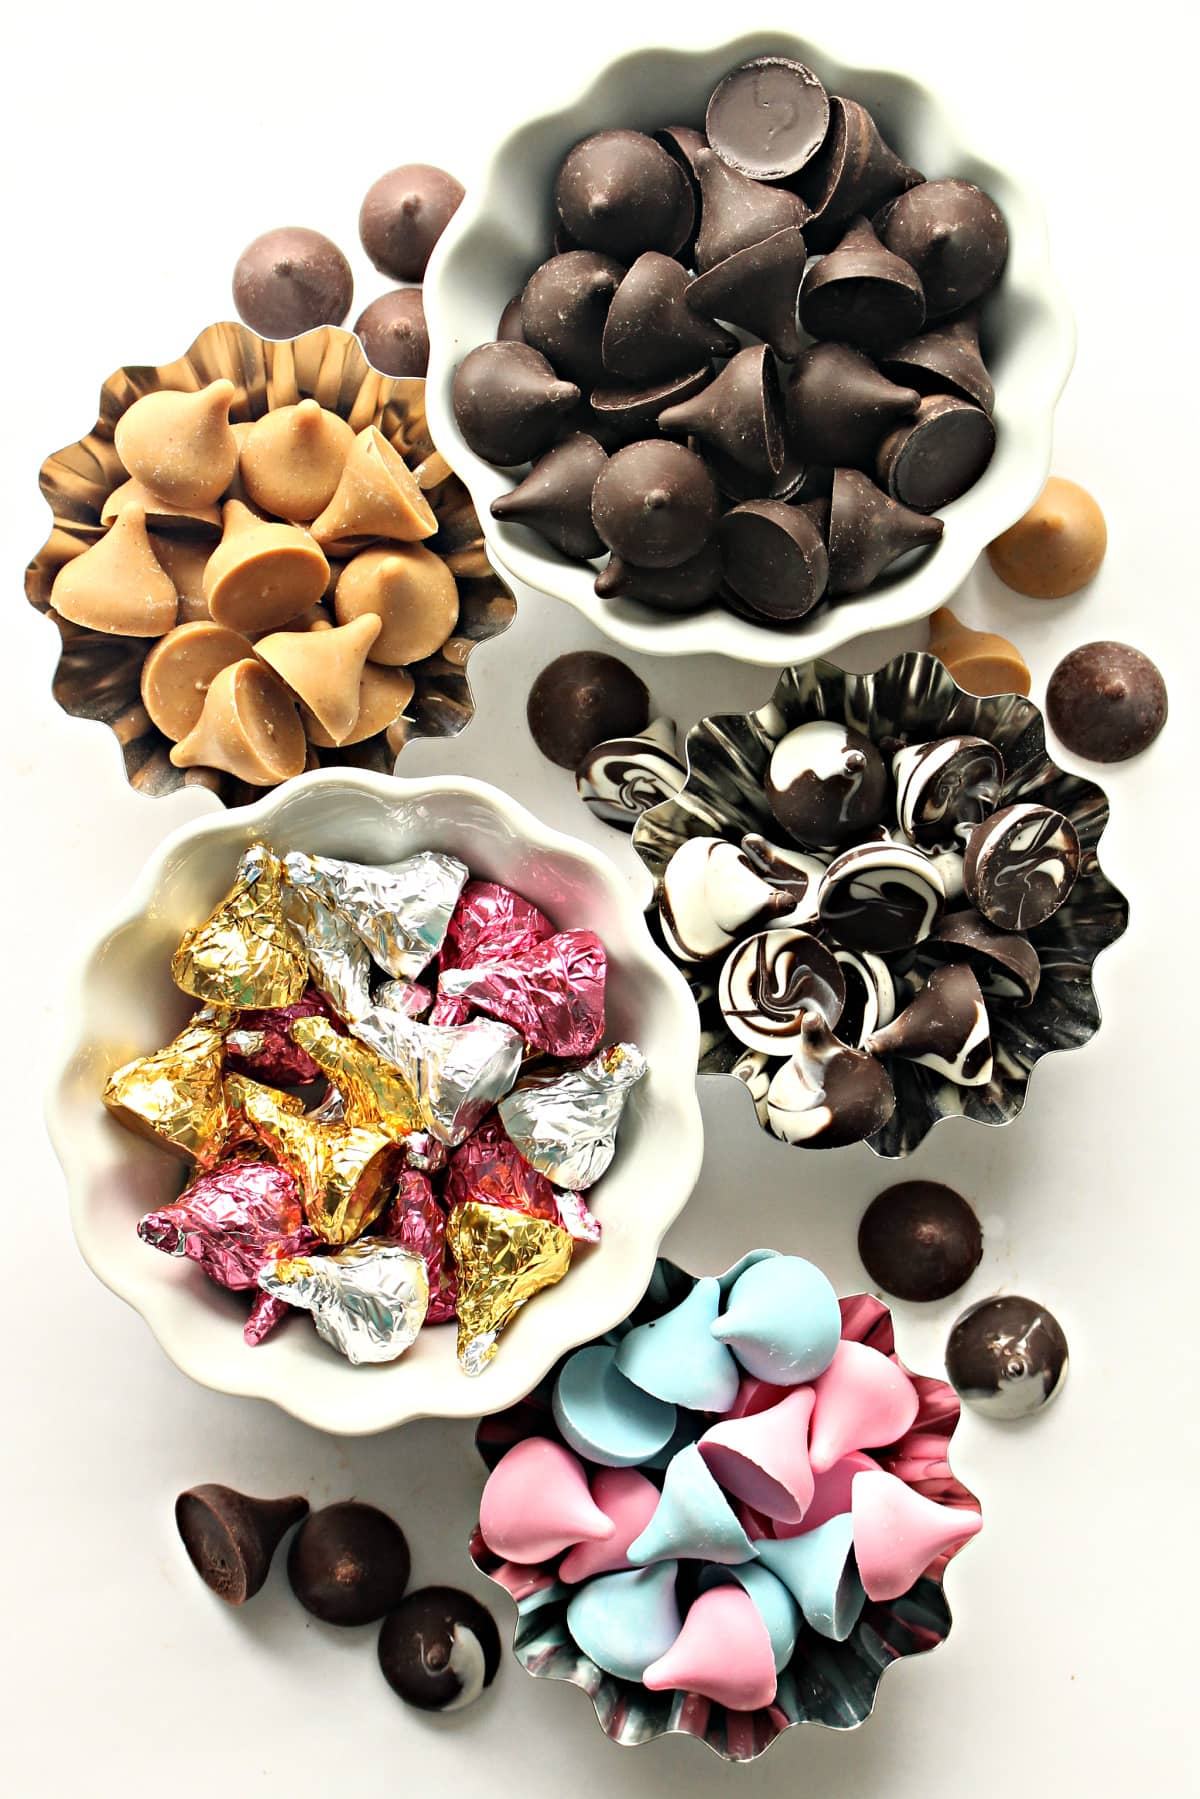 Bowls of Chocolate Kisses with different colors and flavors: chocolate, butterscotch, swirls, foil wrapped, pink, blue.